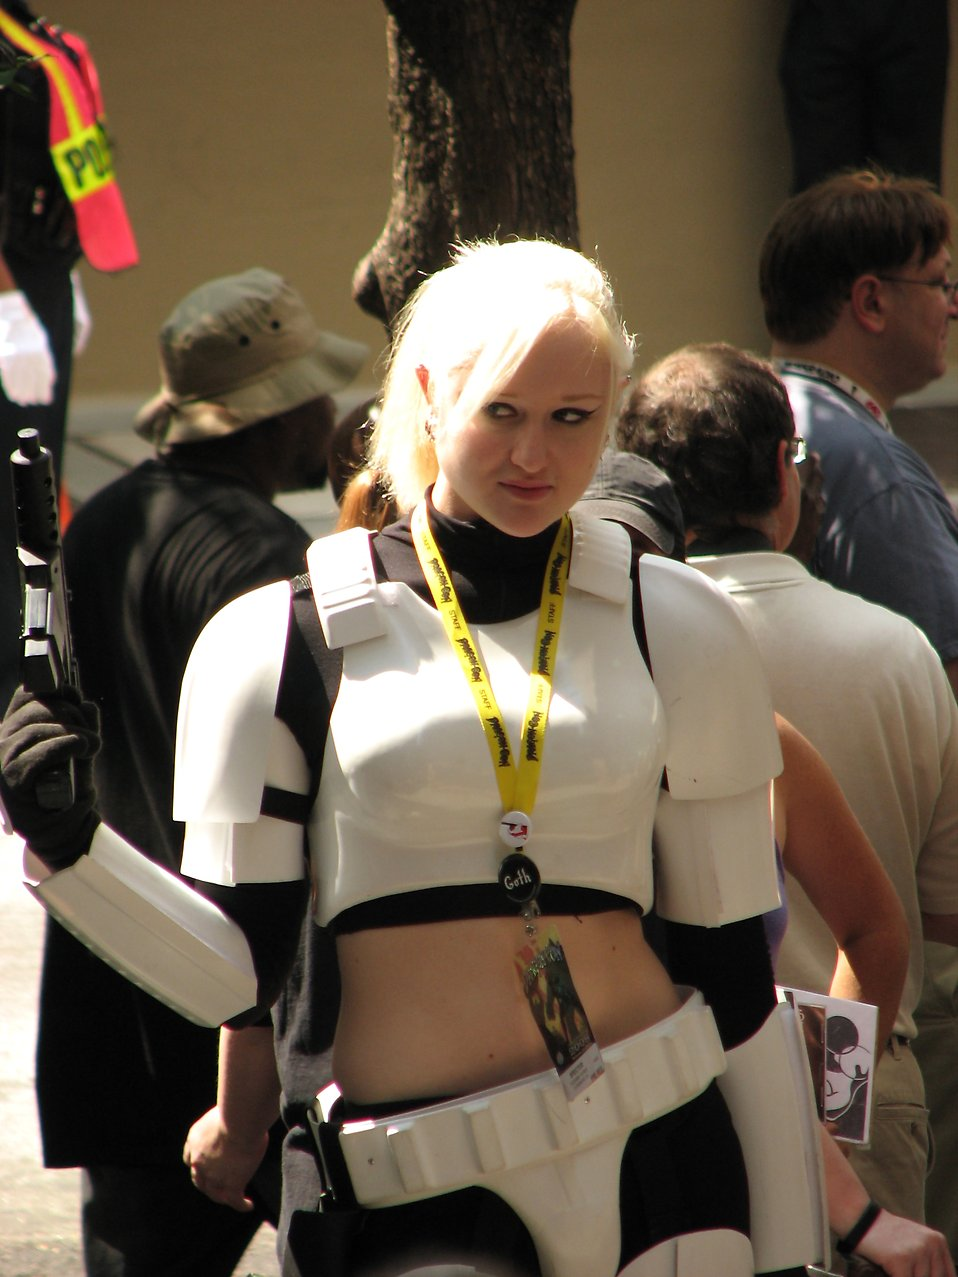 Beautiful girl in Stormtrooper costume at Dragoncon 2008 : Free Stock Photo